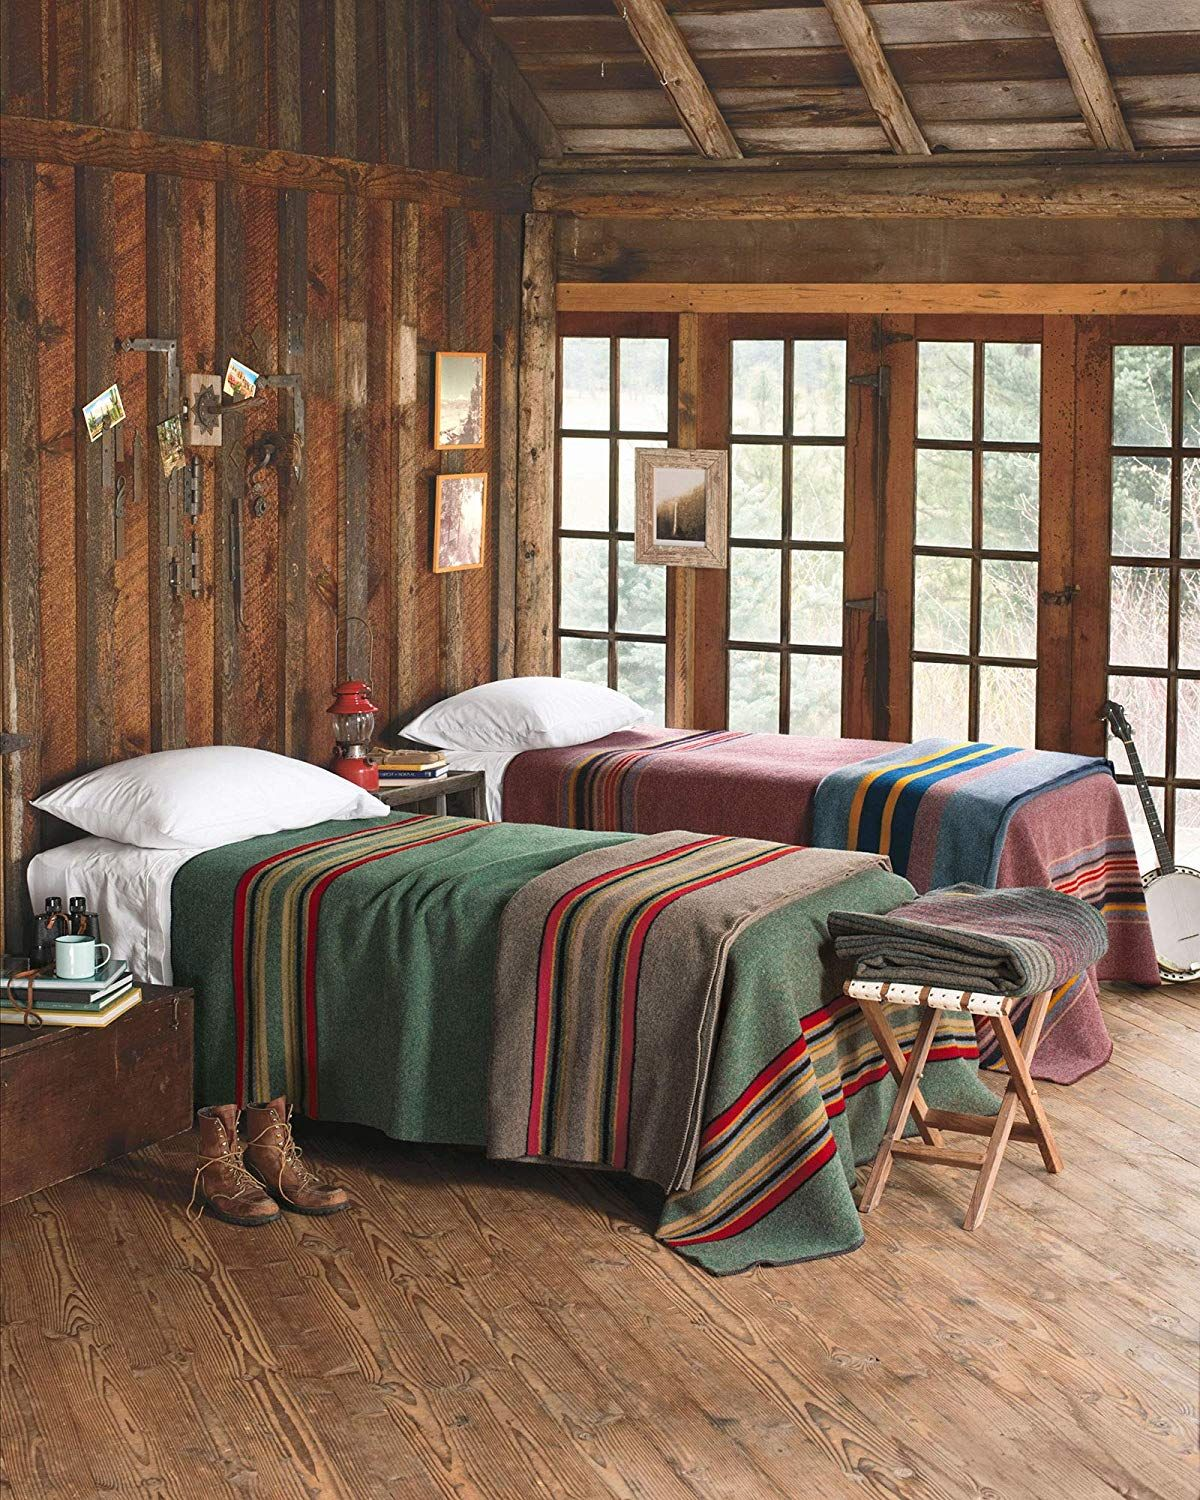 Amazon Com Pendleton Yakima Camp Thick Warm Wool Indoor Outdoor Striped Throw Blanket Red Mountain Queen H Cabin Interiors Cabin Style Mountain Cabin Decor